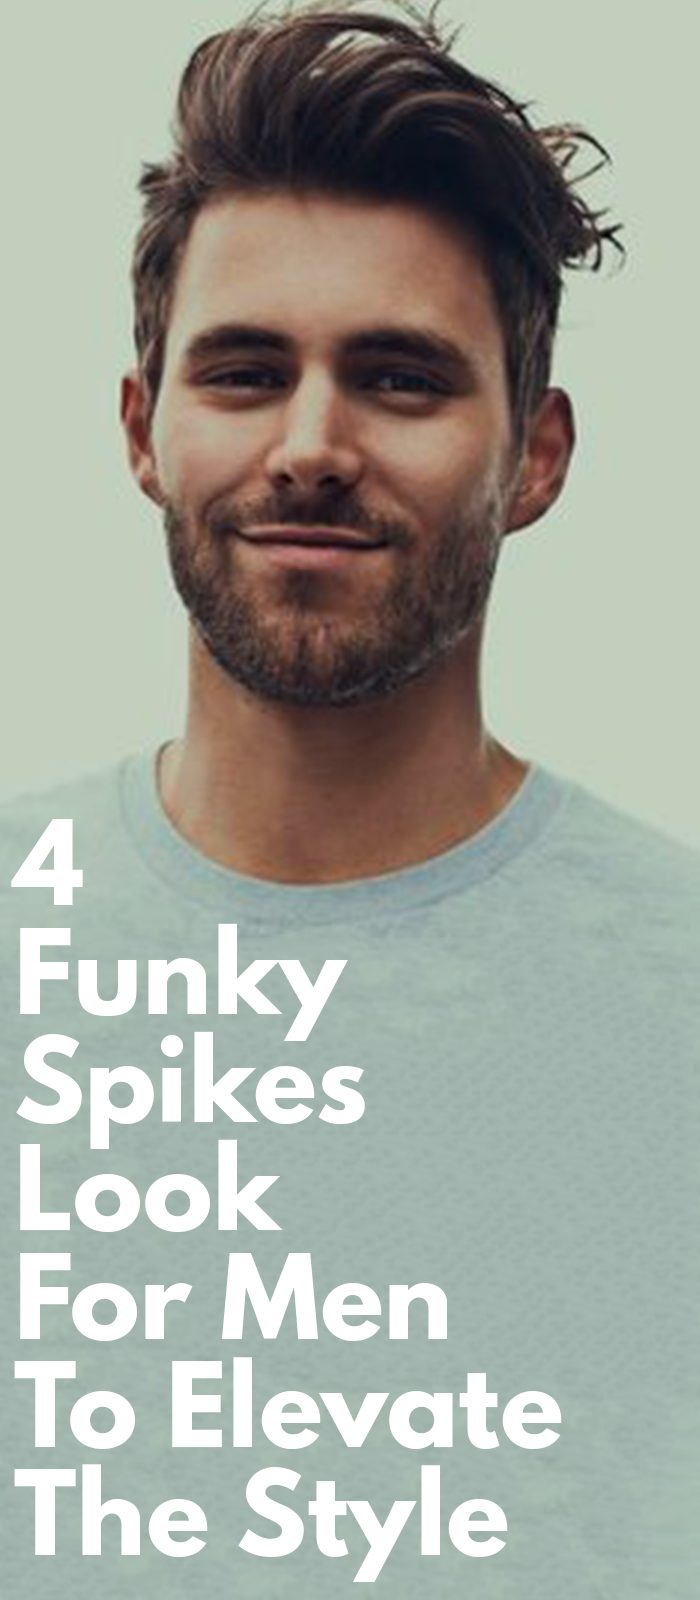 4 Funky Spikes Look For Men To Elevate The Style